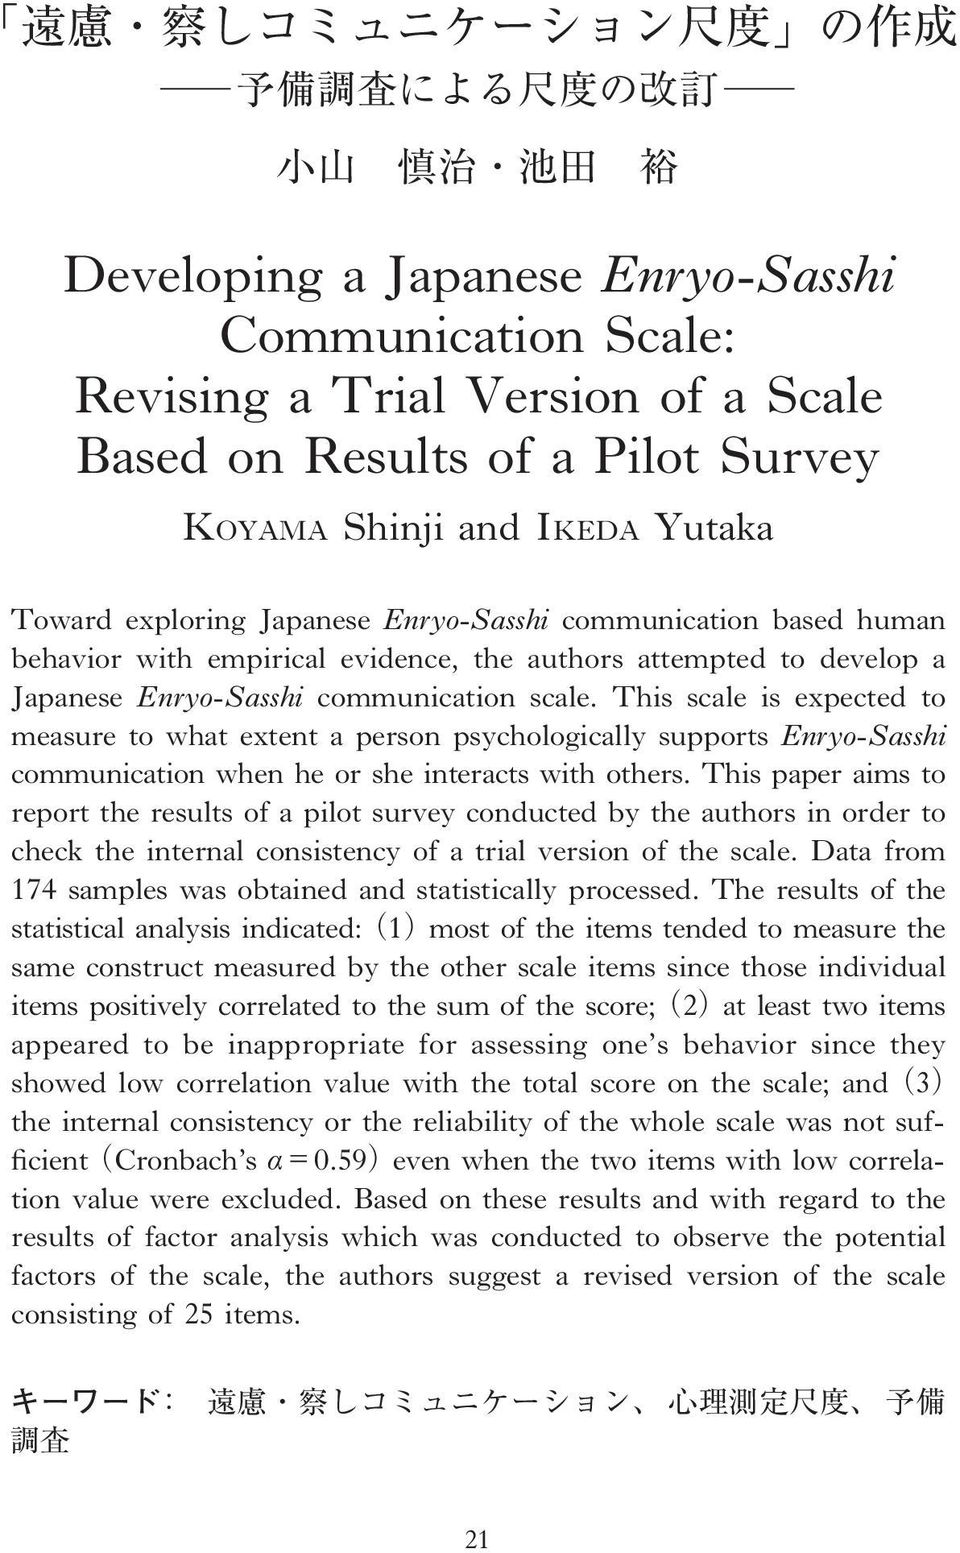 This scale is expected to measure to what extent a person psychologically supports Enryo-Sasshi communication when he or she interacts with others.